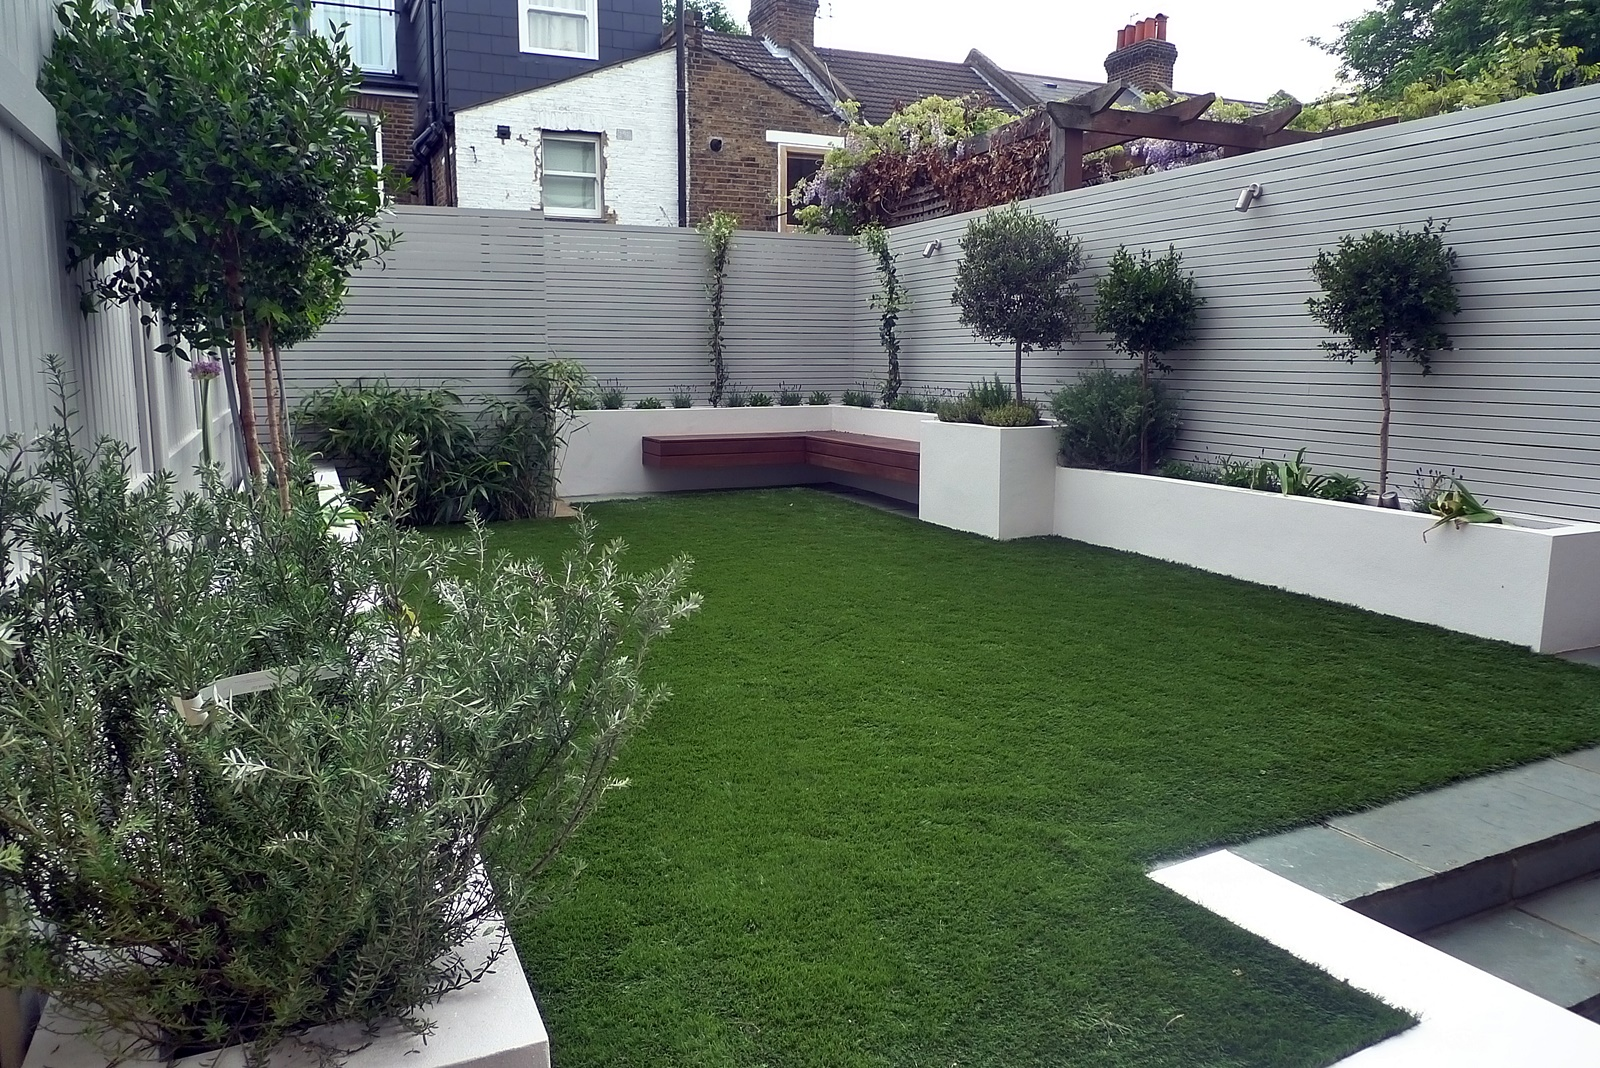 London garden blog london garden blog gardens from for Modern landscaping ideas